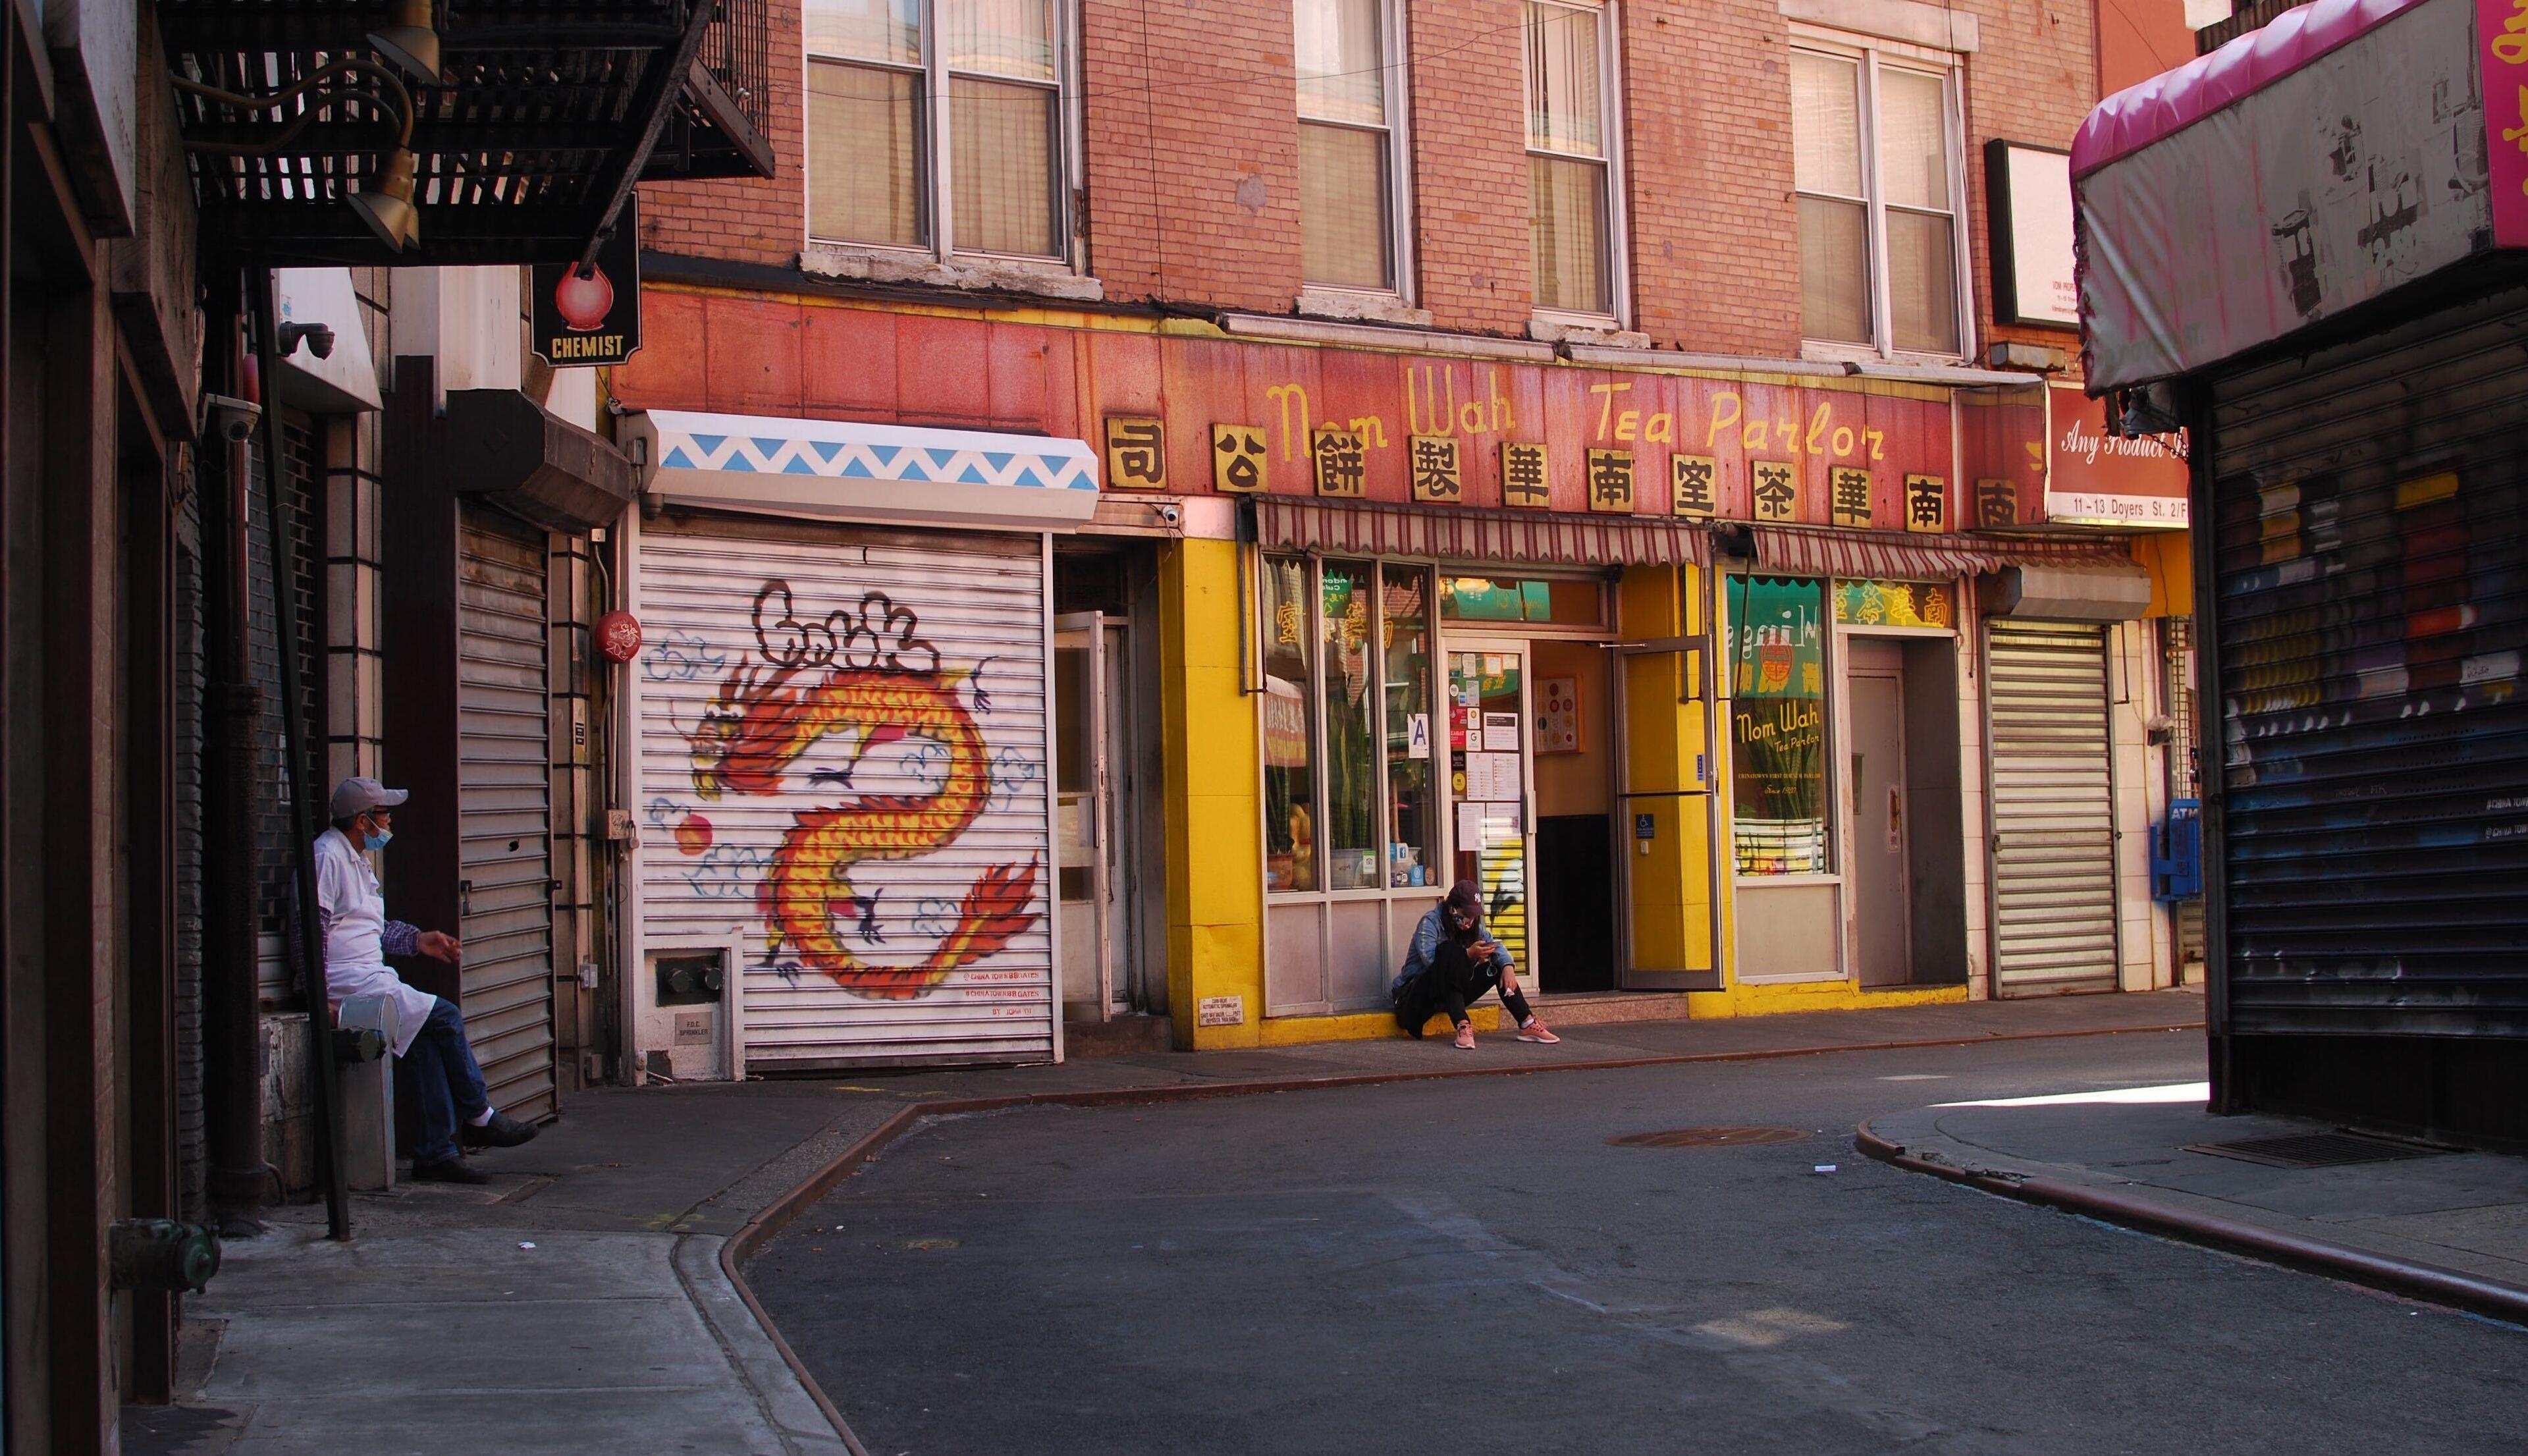 Hopes for a quick recovery fade in NYC's Chinatown